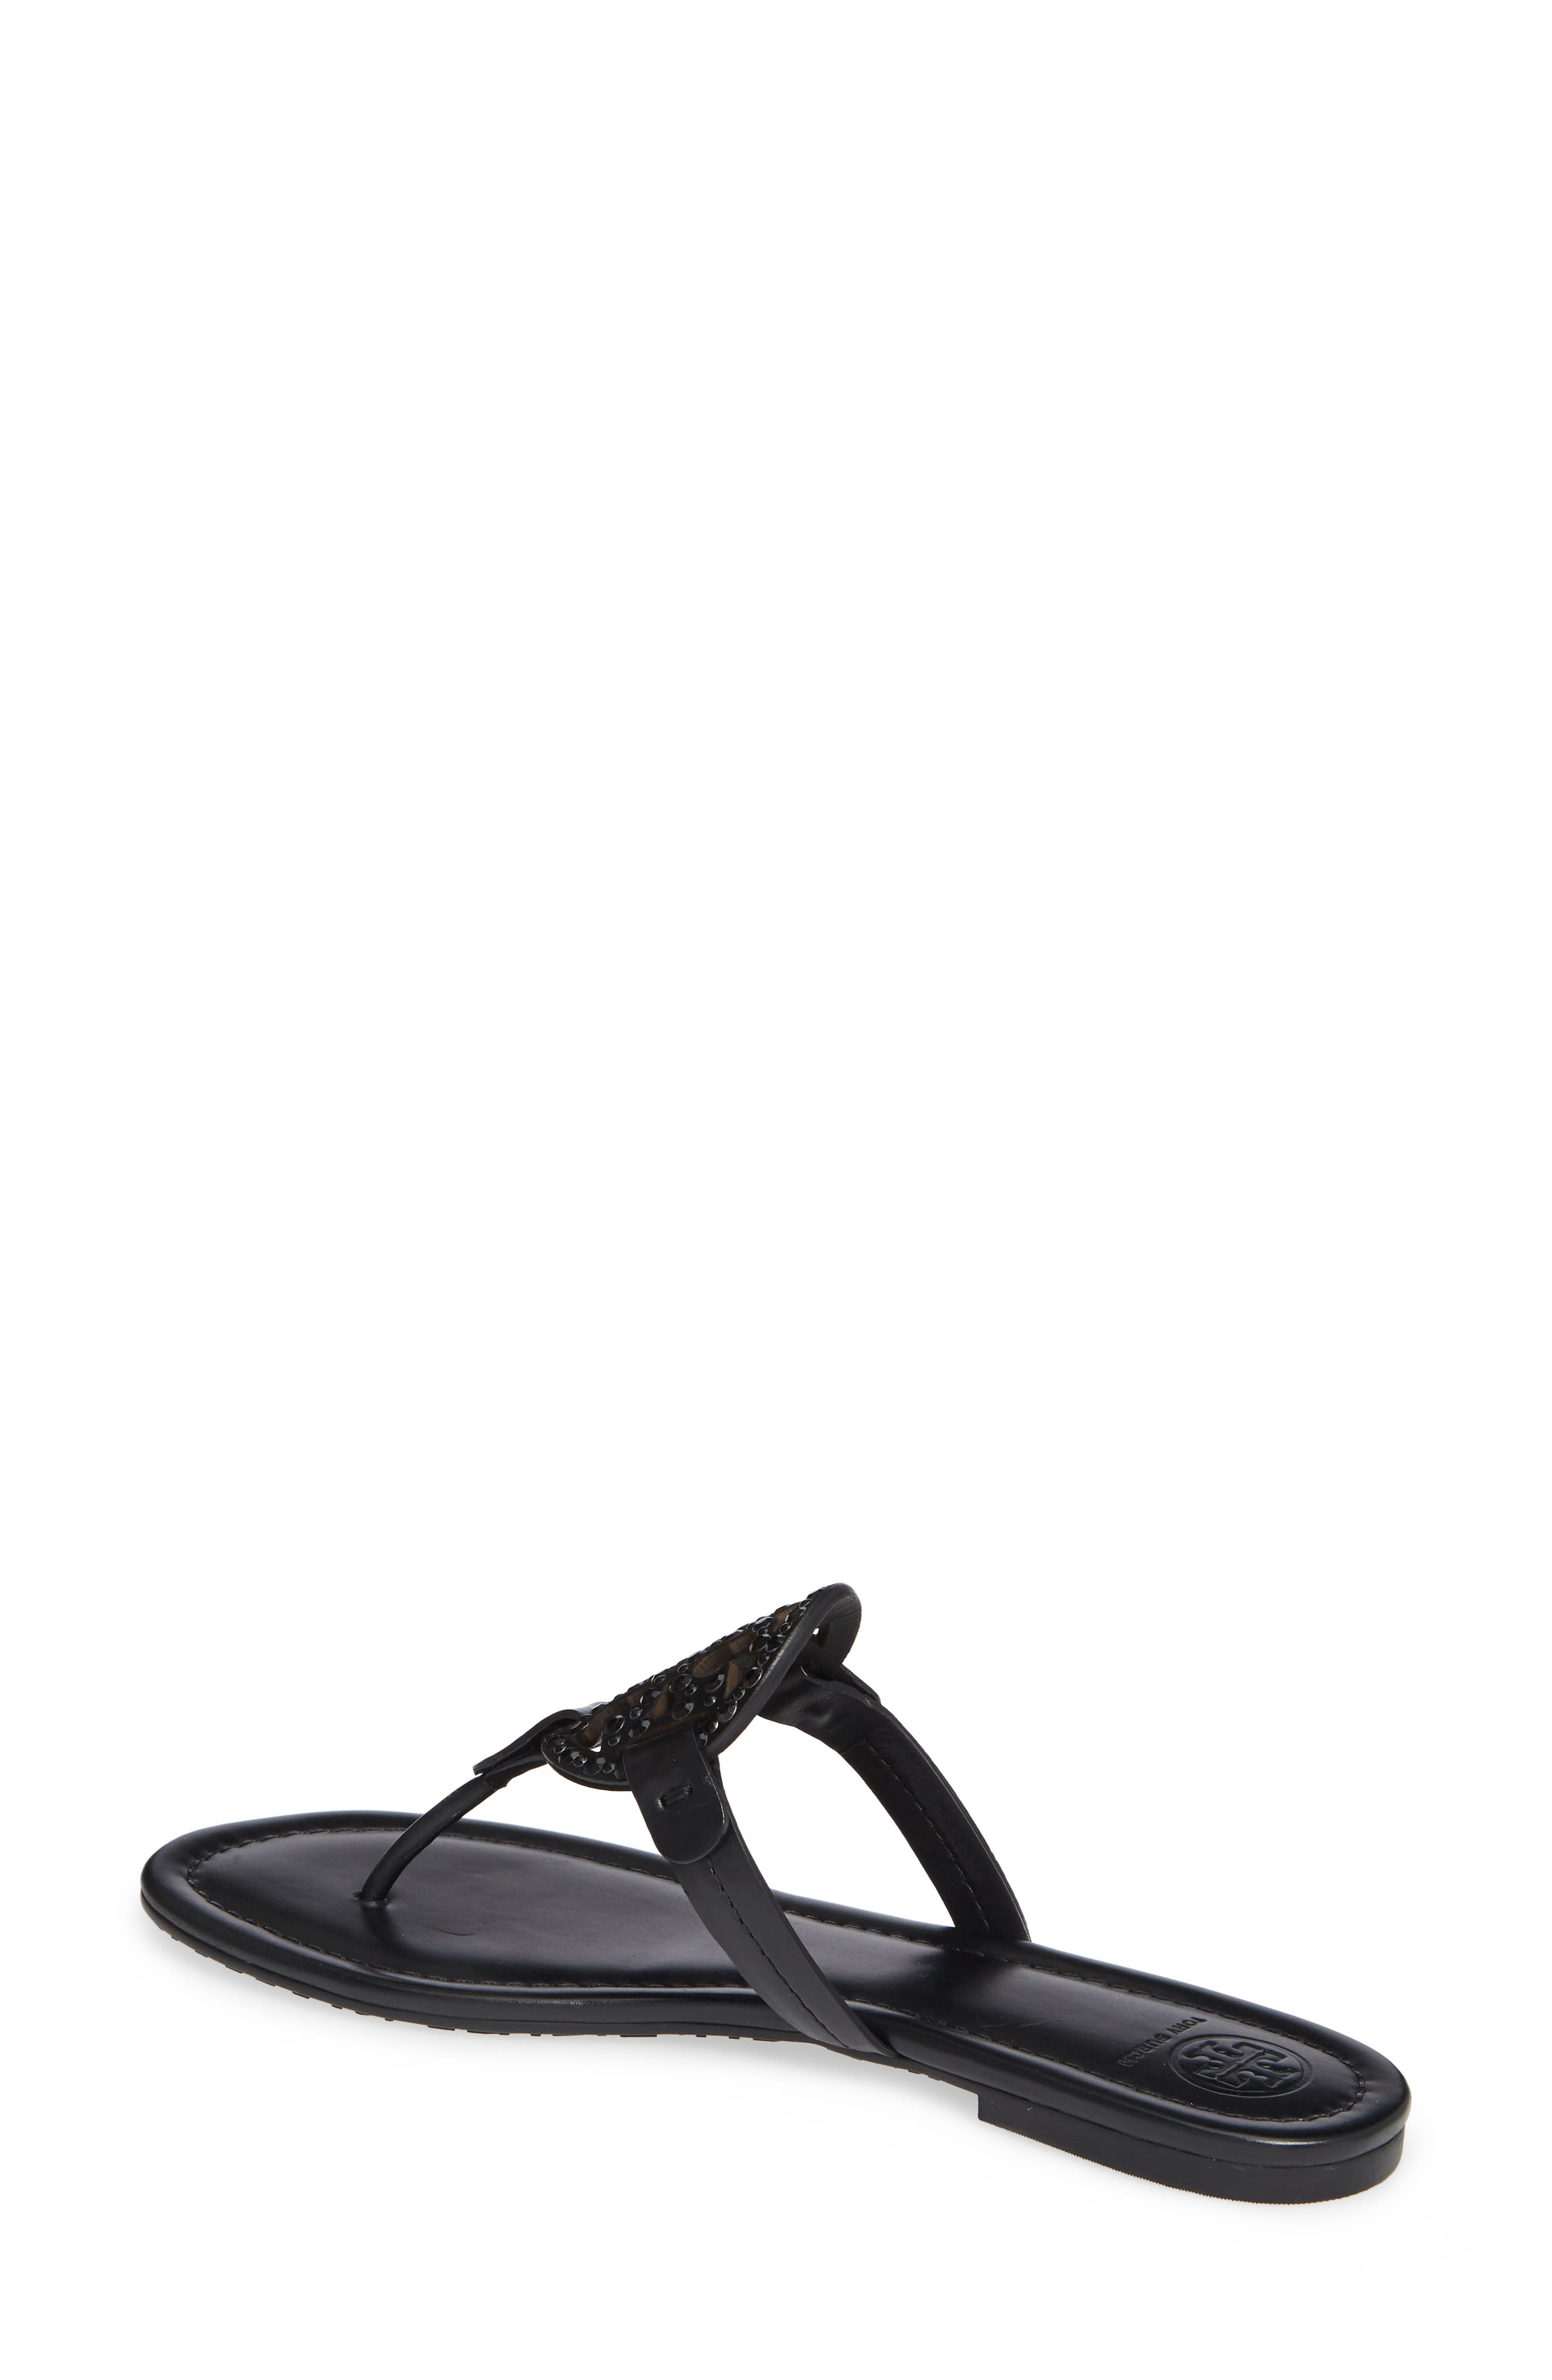 Miller Embellished Sandal,                             Alternate thumbnail 2, color,                             PERFECT BLACK